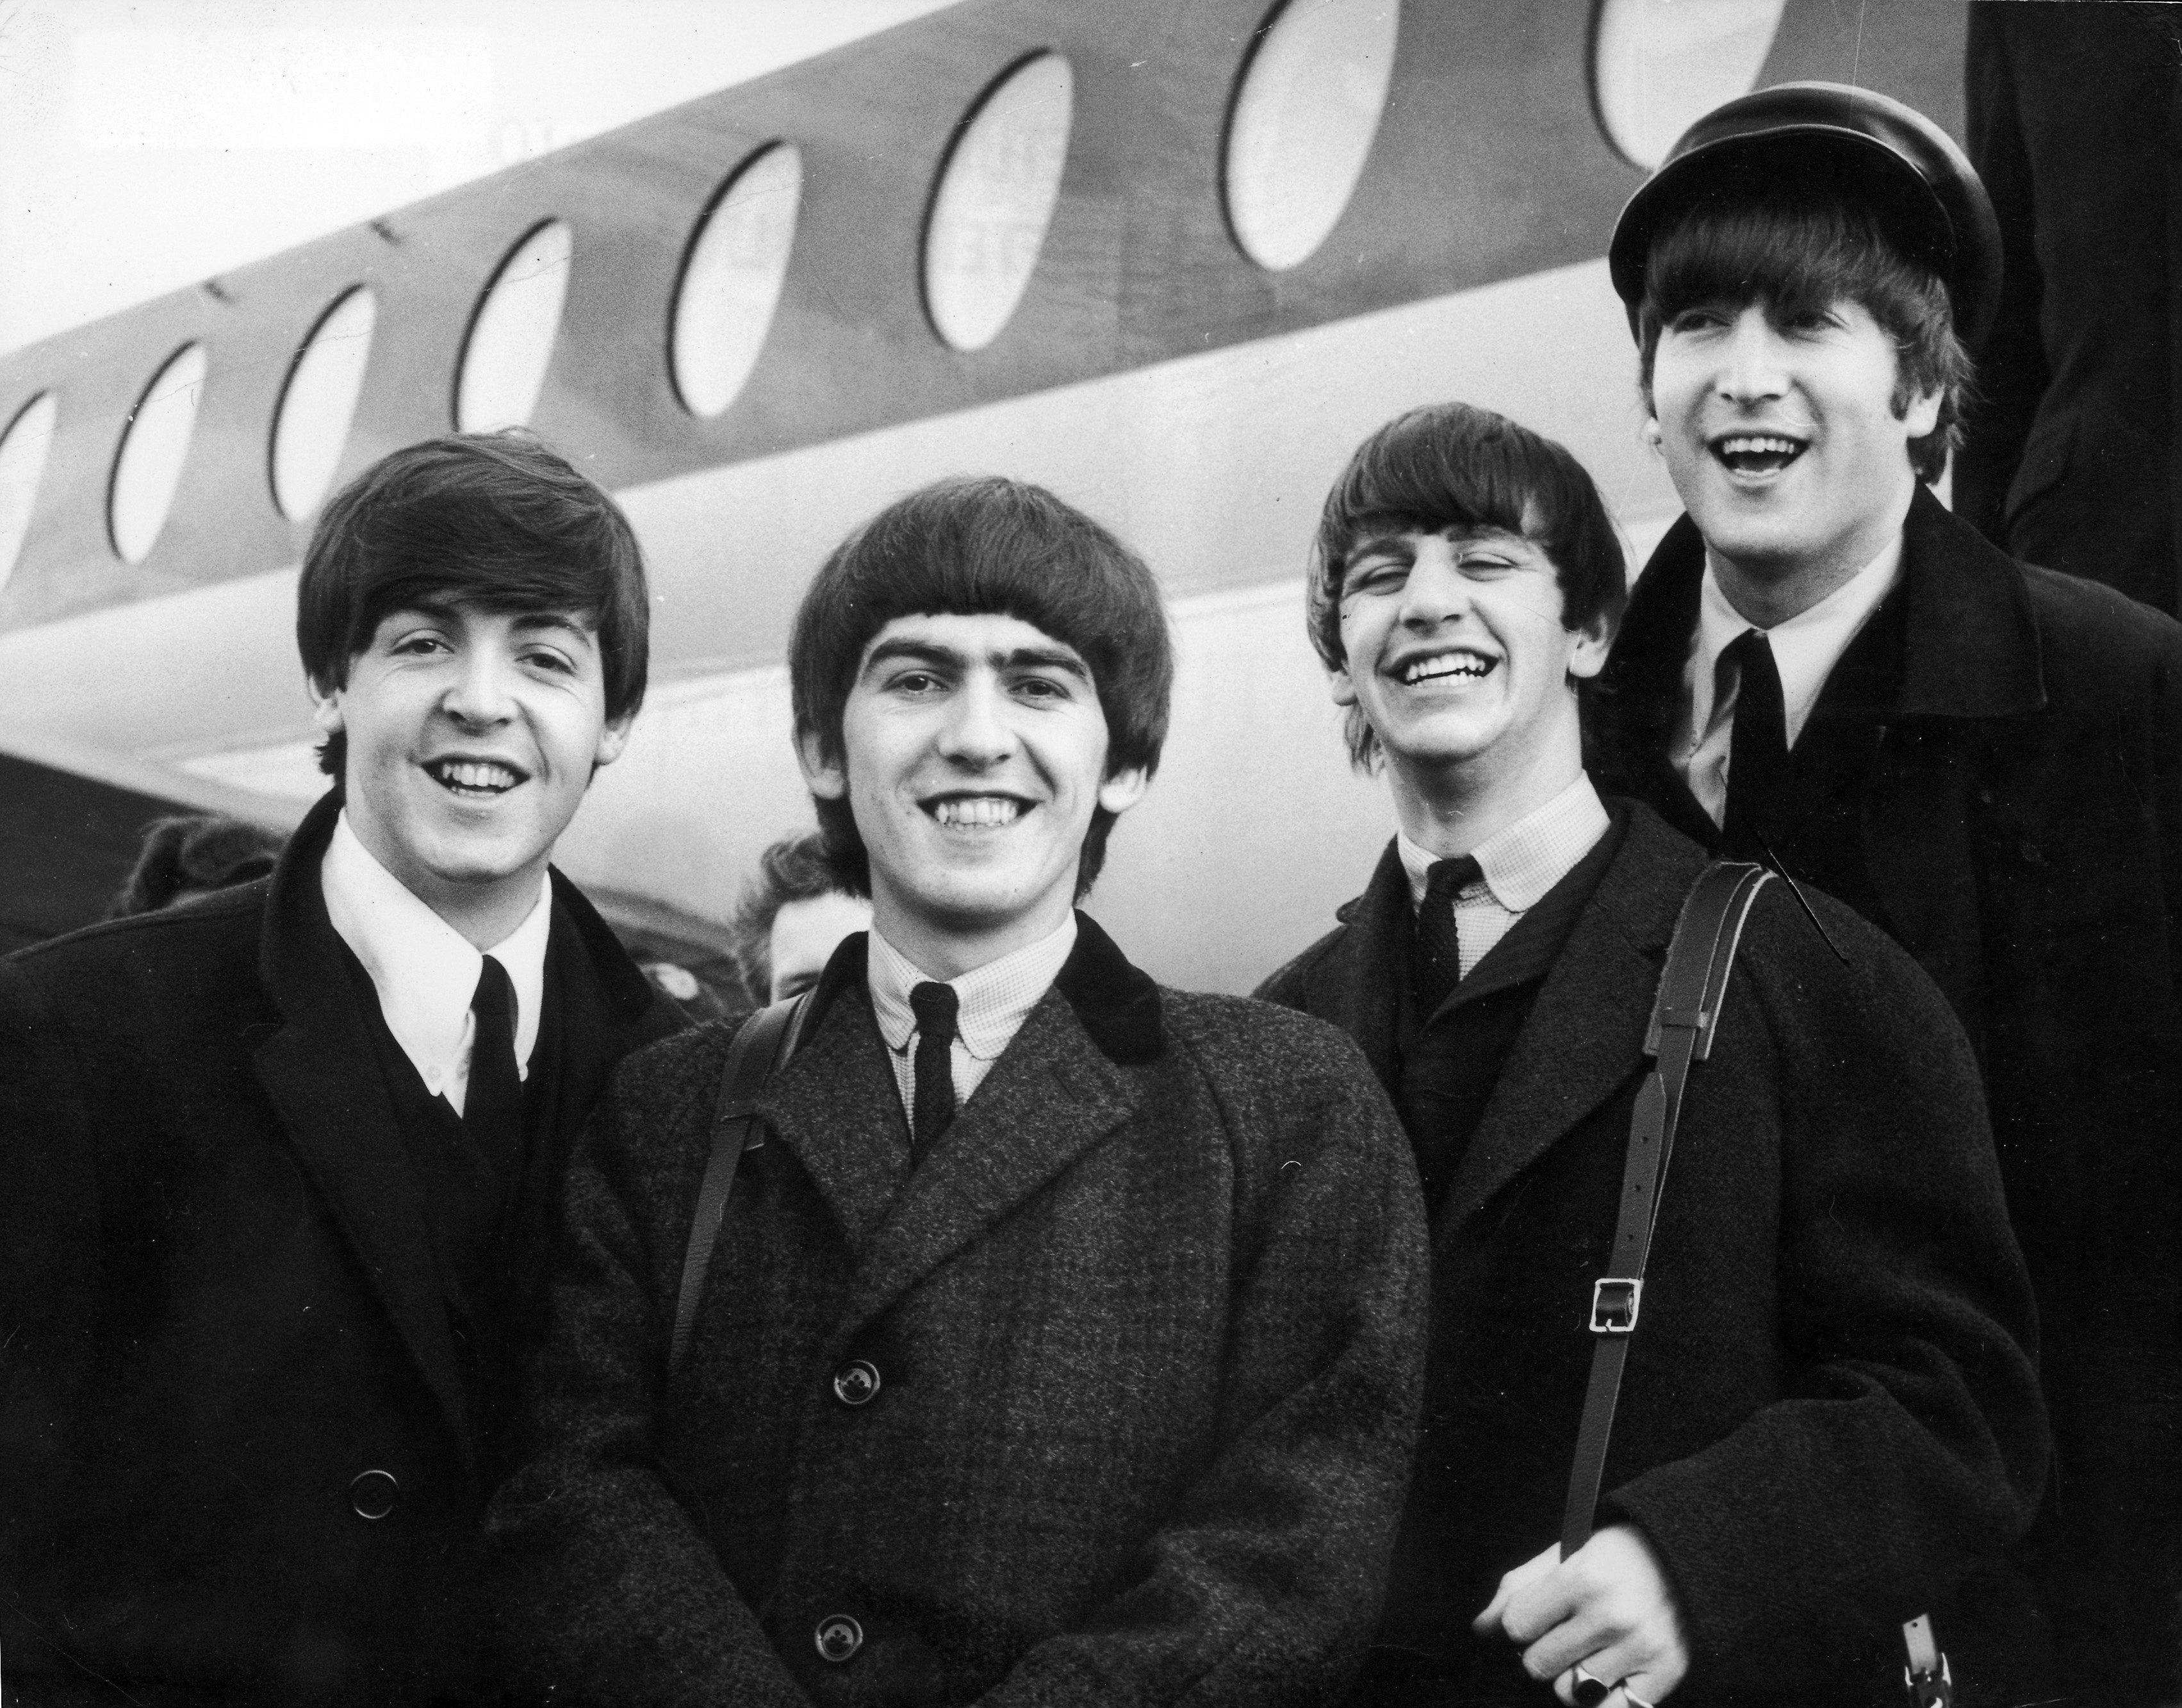 """Local writer Greg Sterlace's funny and informative book about the Fab Four, """"The Beatles: Having Read the Book,"""" is now available in some area stores and online."""